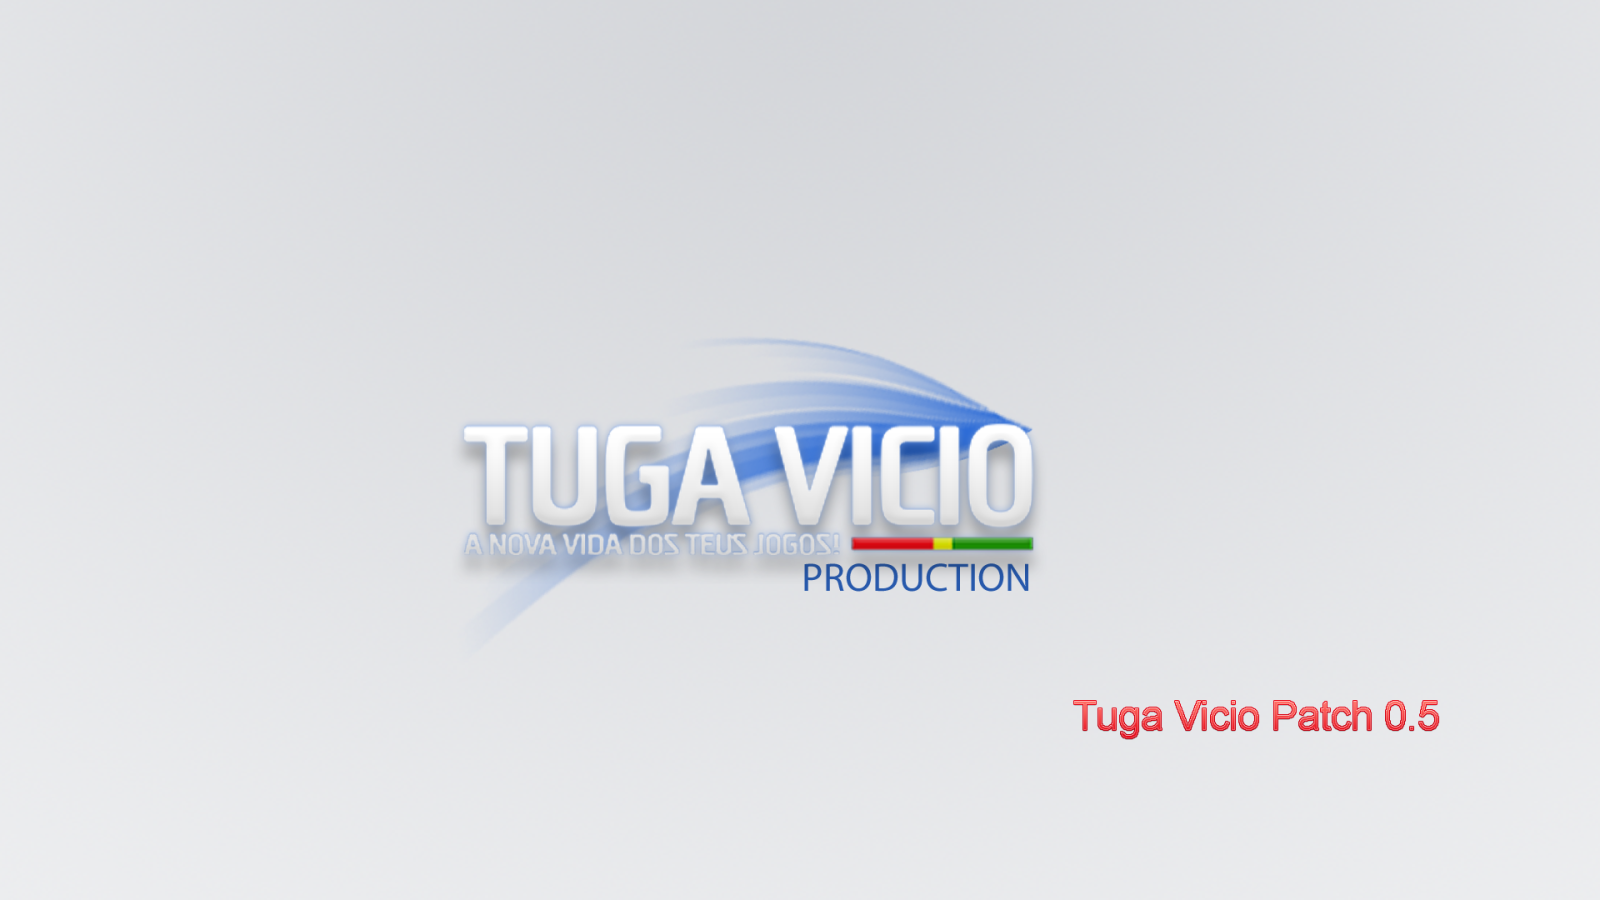 Patch Tuga Vicio 0.5 (PES17 PC) Released  28.10.2016 2lmqr8g